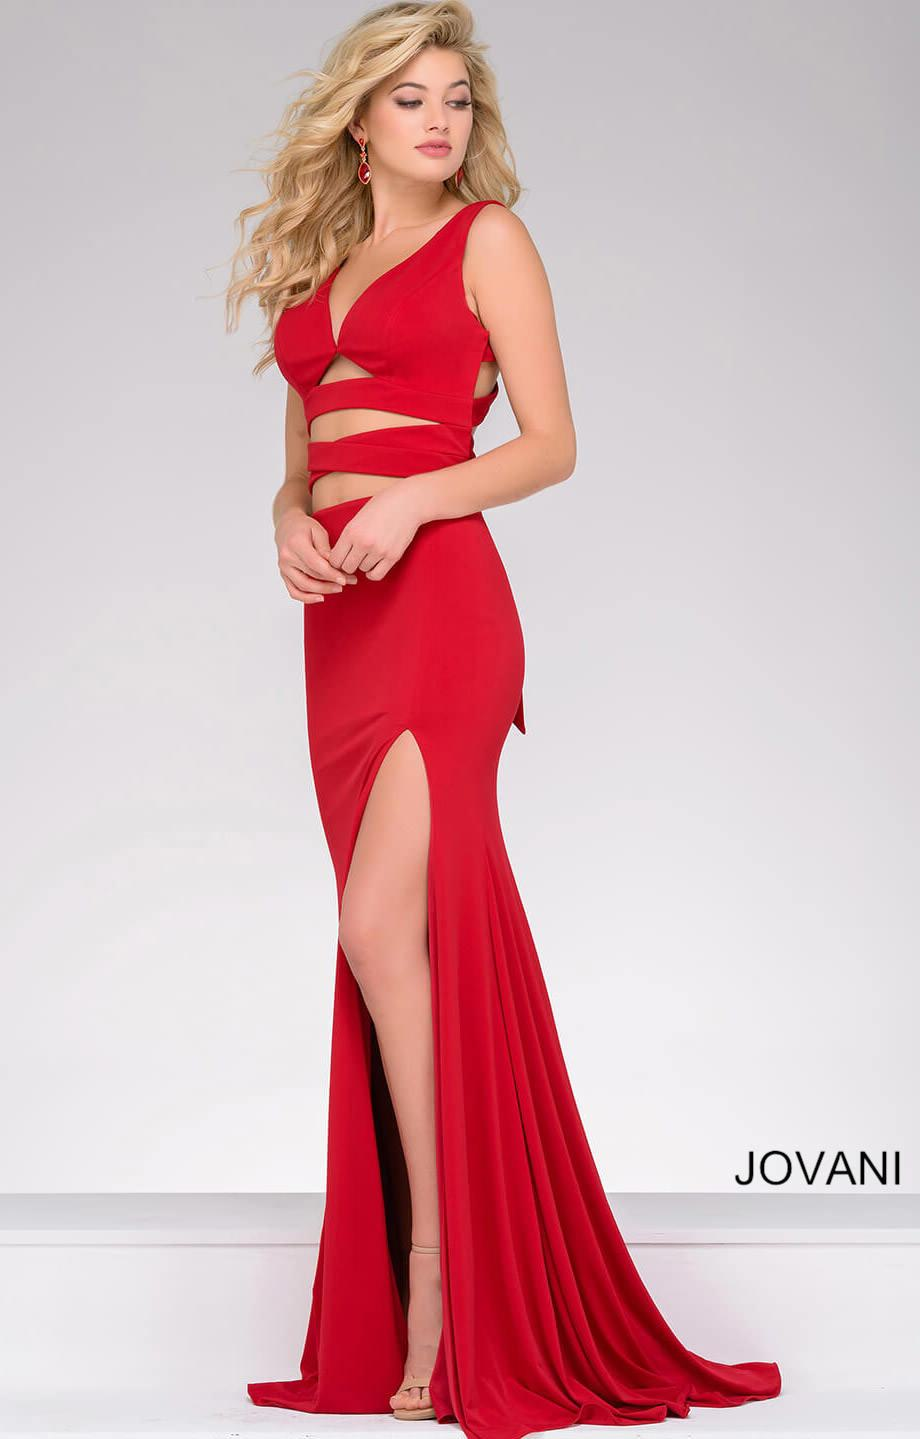 Jovani 47501 Adjustable 2 Piece High Slit Jersey Dress